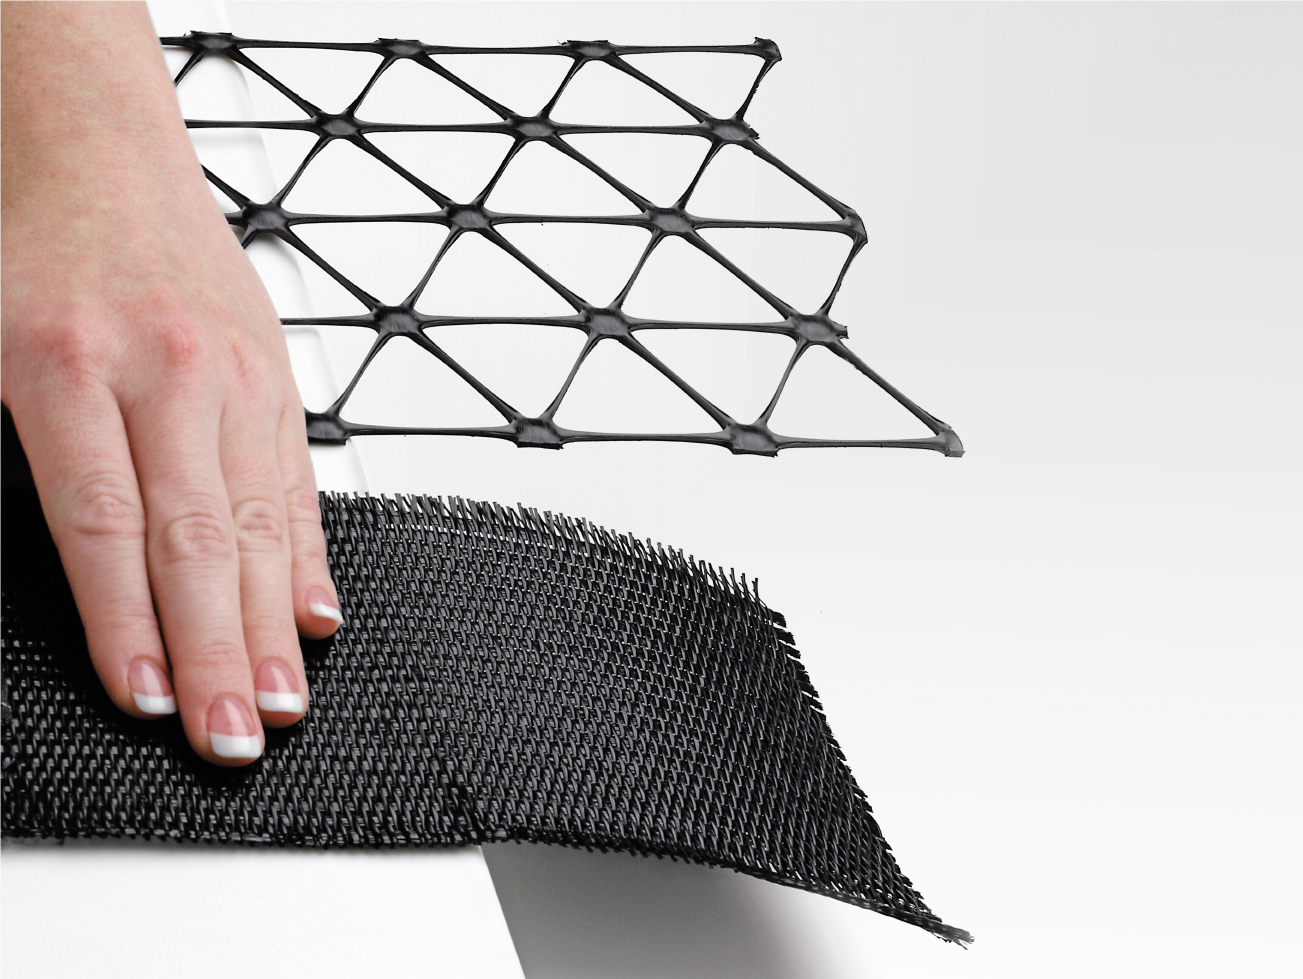 Tensar-TriAx-Geogrid-Fabric-Comparison-Stiffness-Rigidity